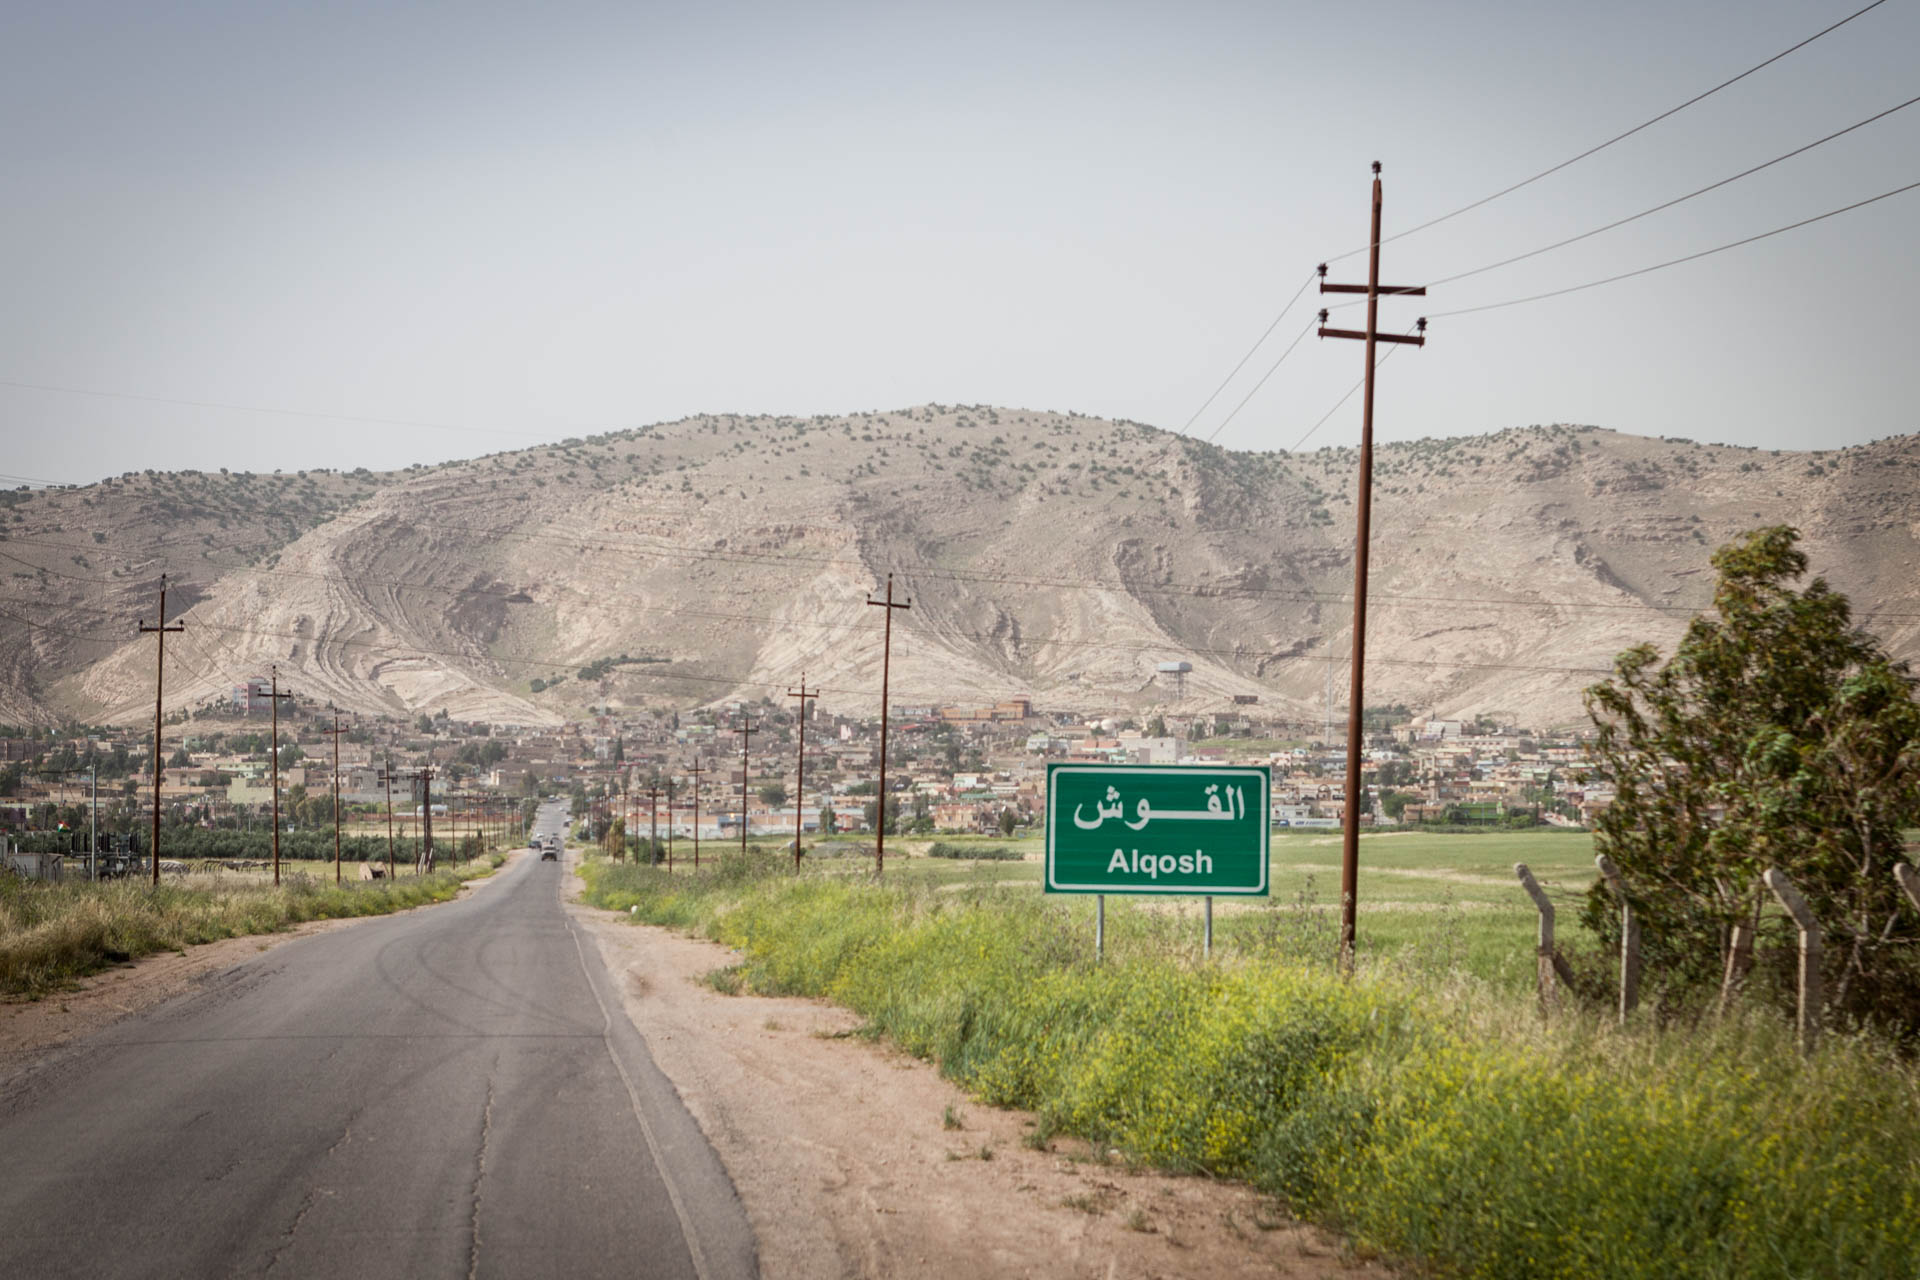 The city of Alqosh lies 40 km away from Mosul, its inhabitants are solely Aramaic speaking Christians. Most of them left the city, when the Islamic State was about to capture the road. Few of the citizens have returned until today, with the front line still being rather close.